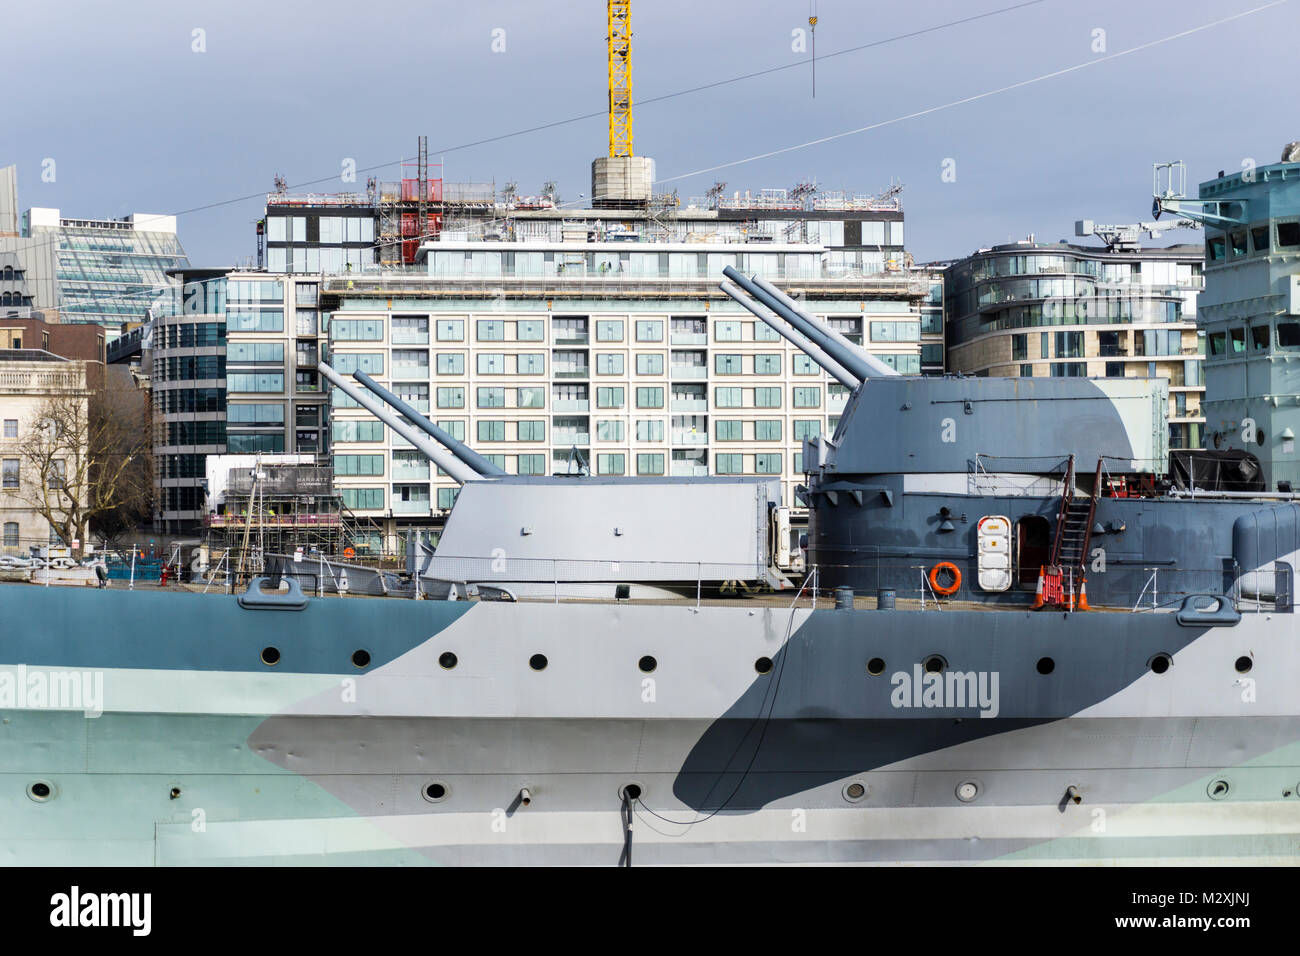 The forward guns of HMS Belfast are famously trained on the Scratchwood Services, now London Gateway service station, - Stock Image